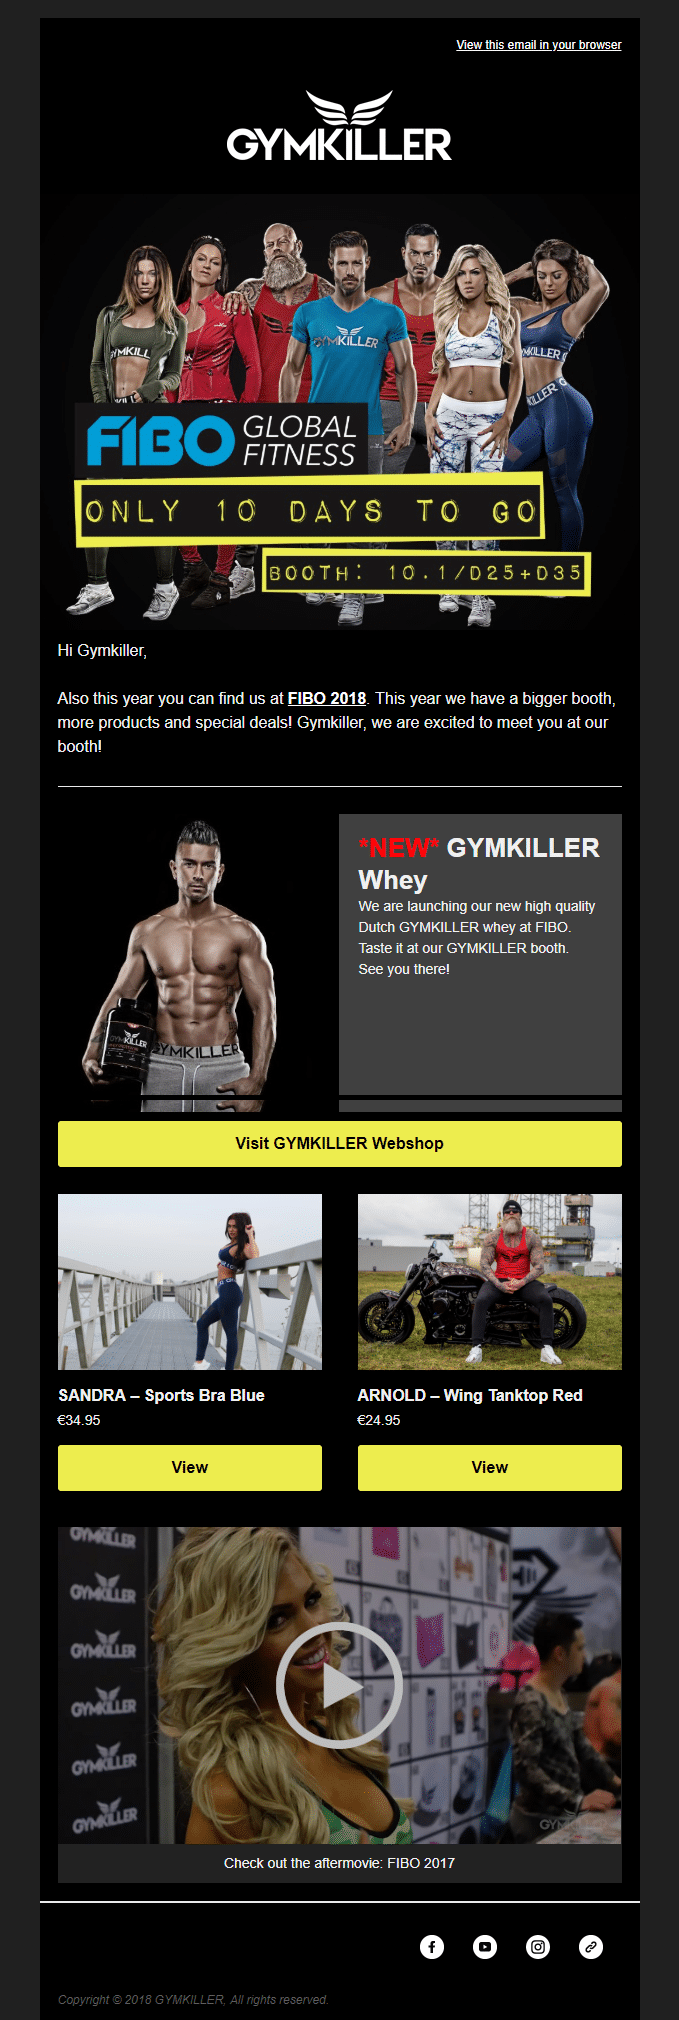 Screenshot of newsletter created for Gymkiller by agency